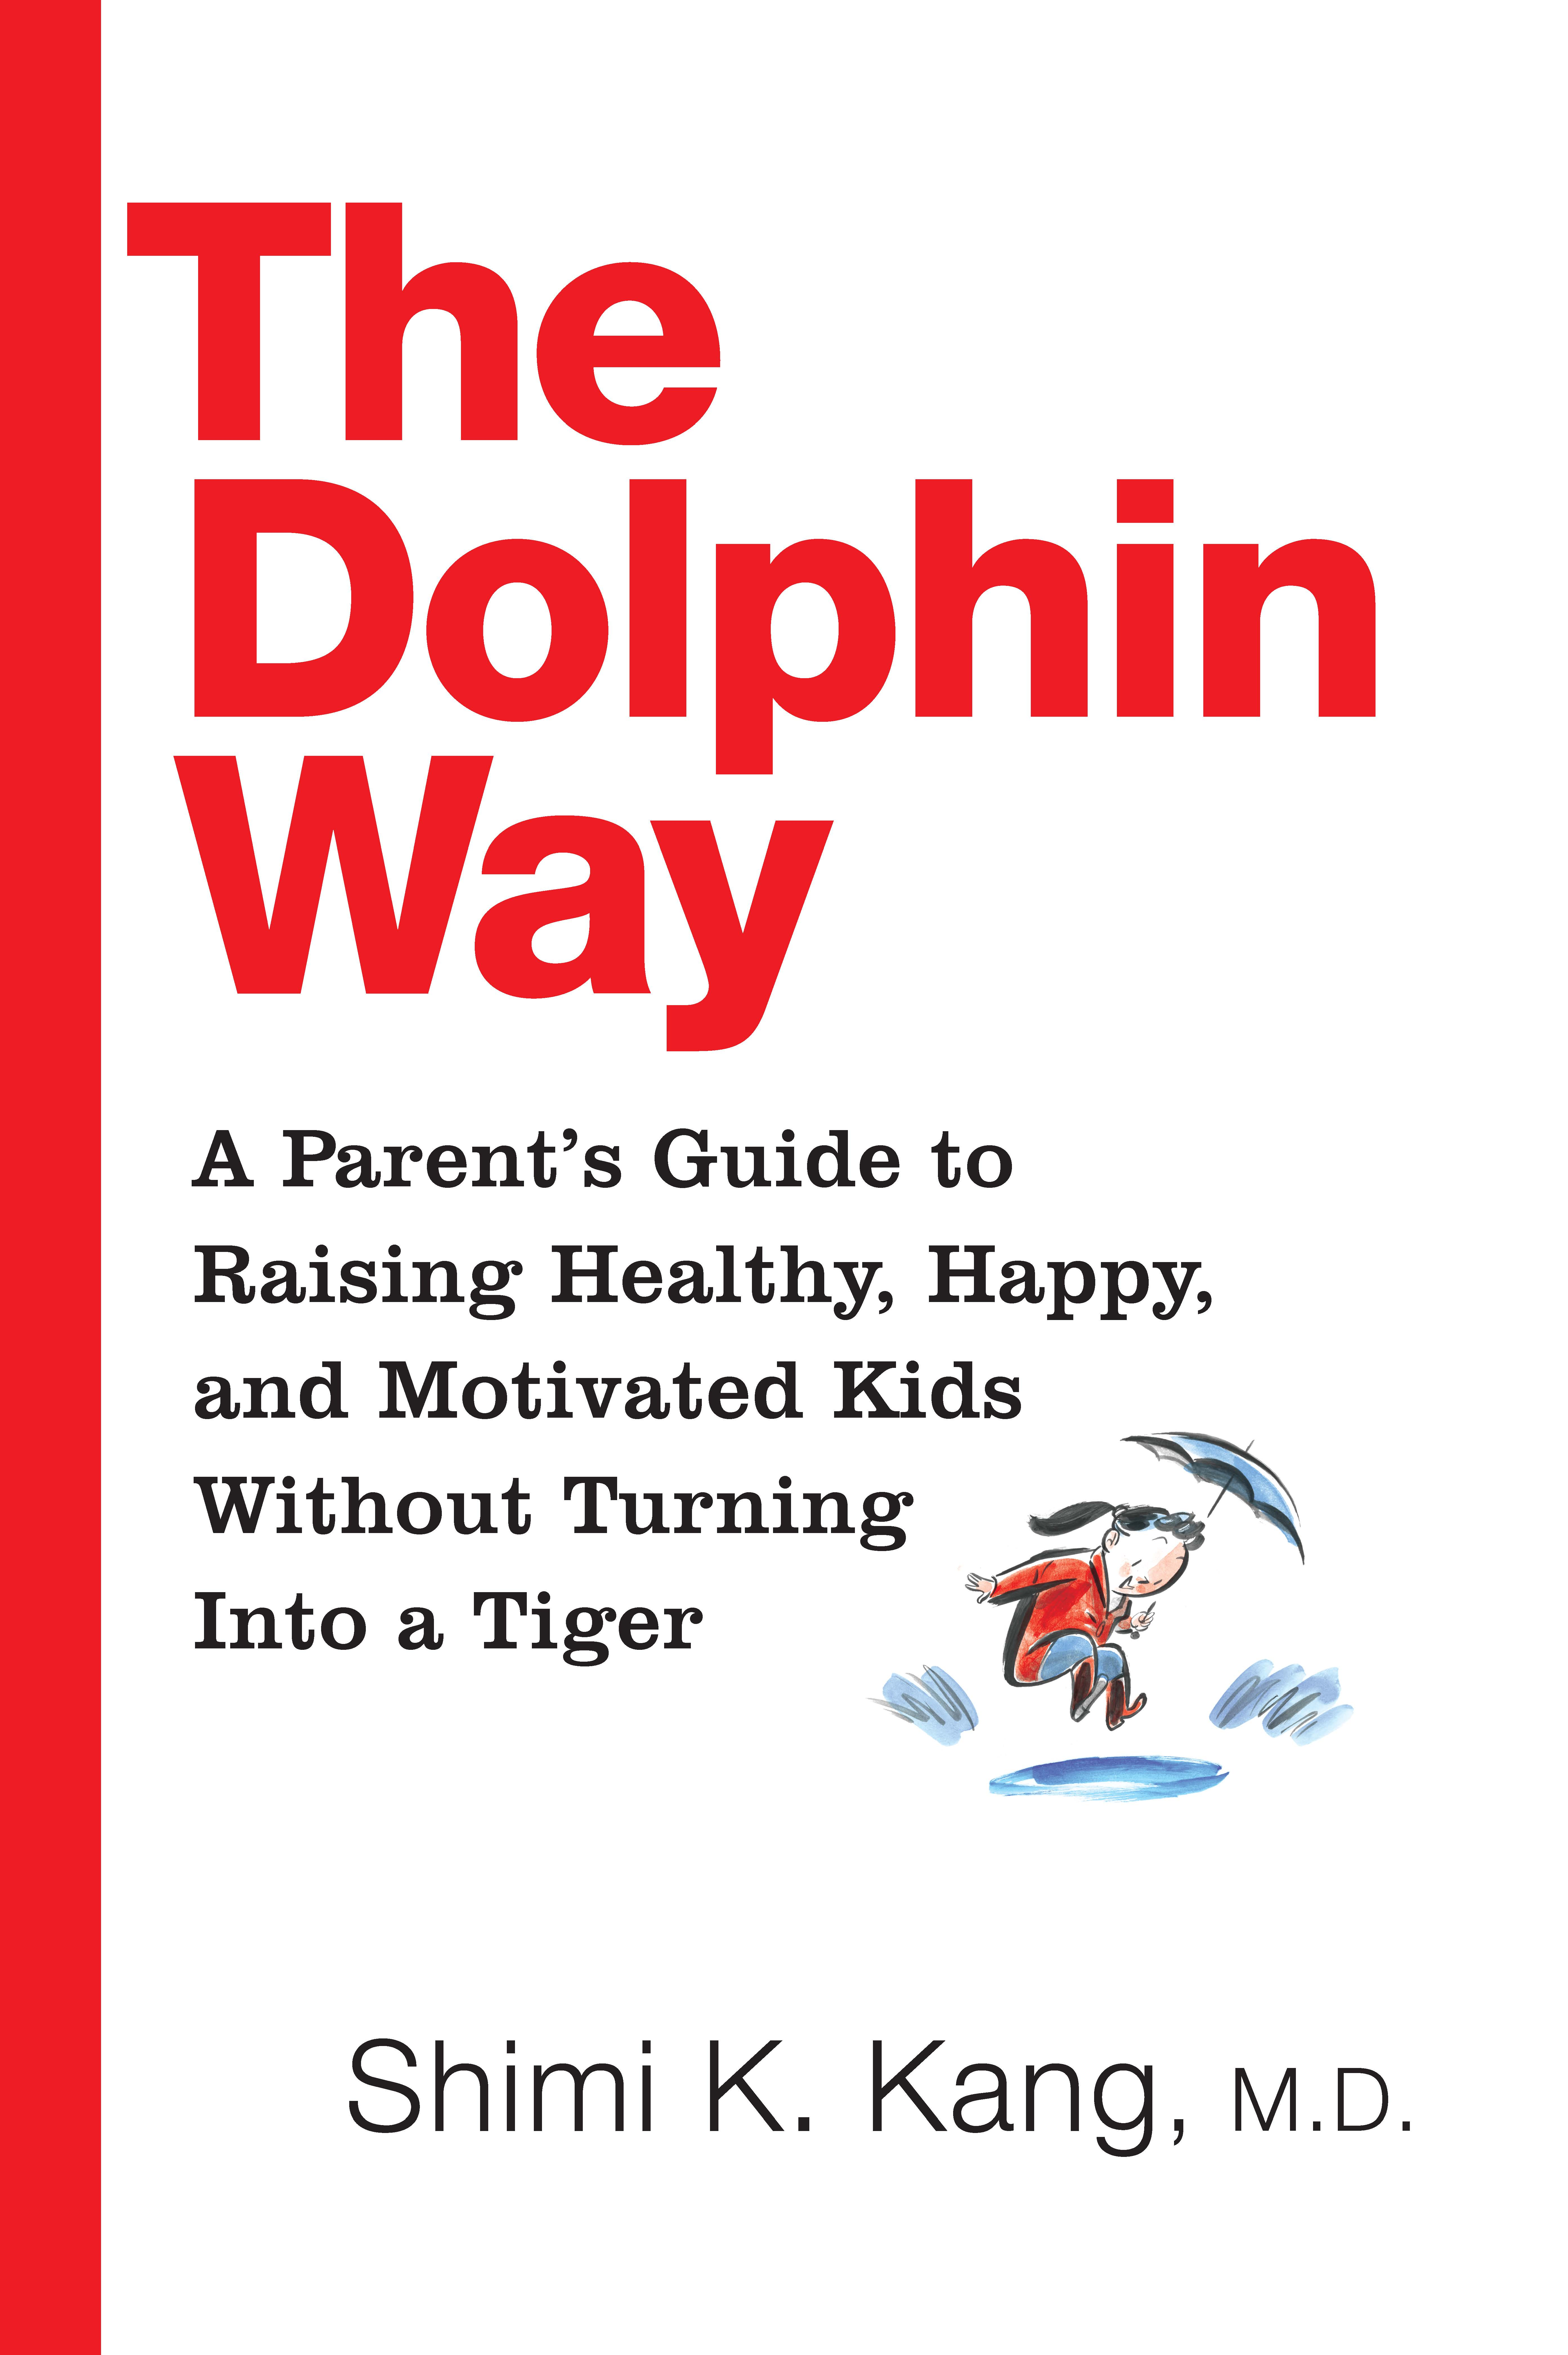 Parenting The Dolphin Way: Without Turning Into A Tiger {Book Review} @PenguinCanada @drshimikang